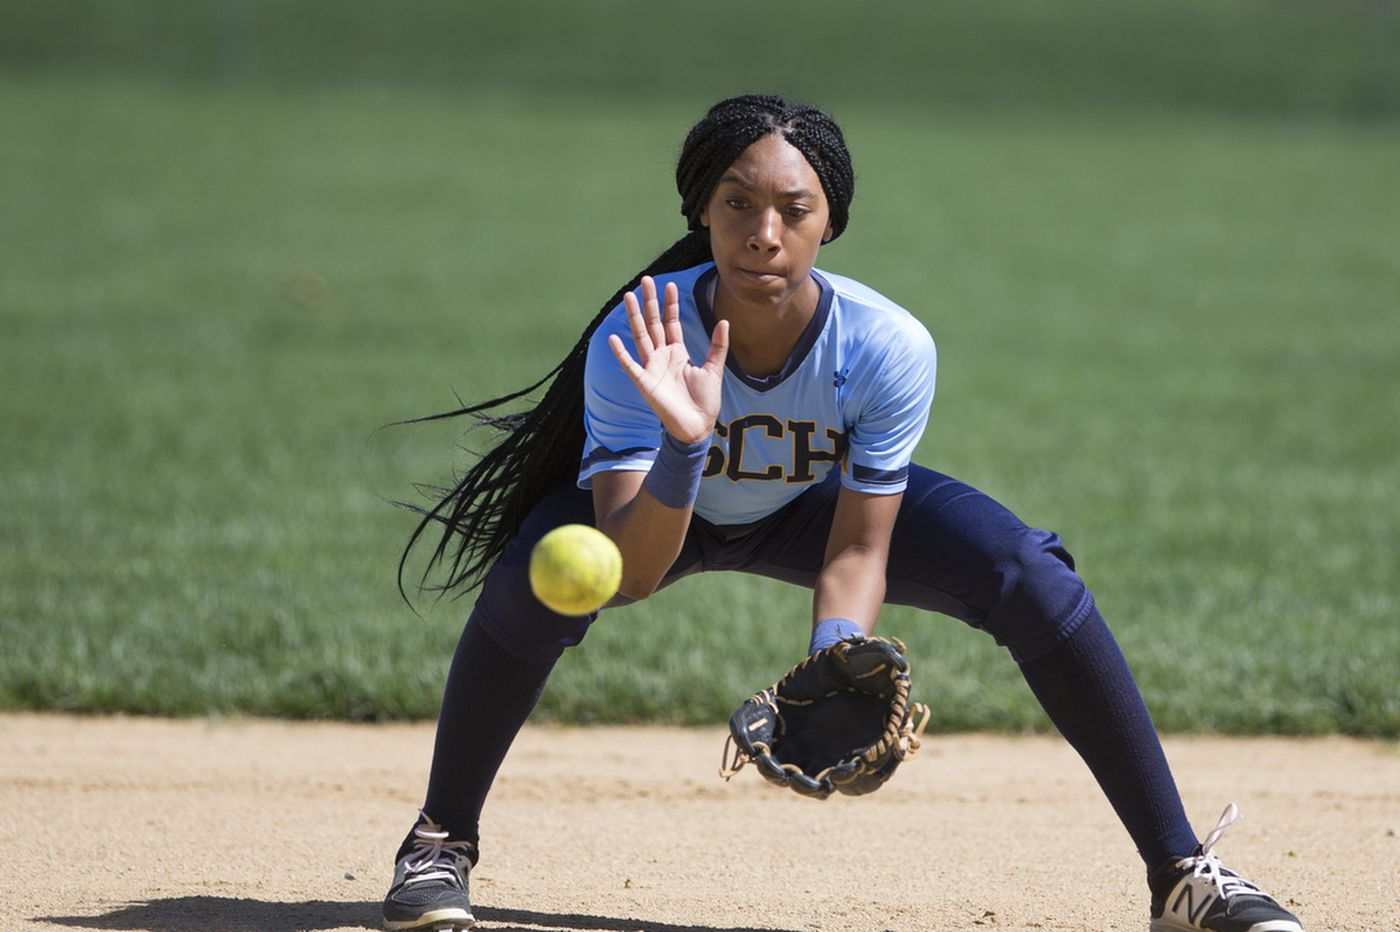 Mo'ne Davis will attend Hampton University to play softball